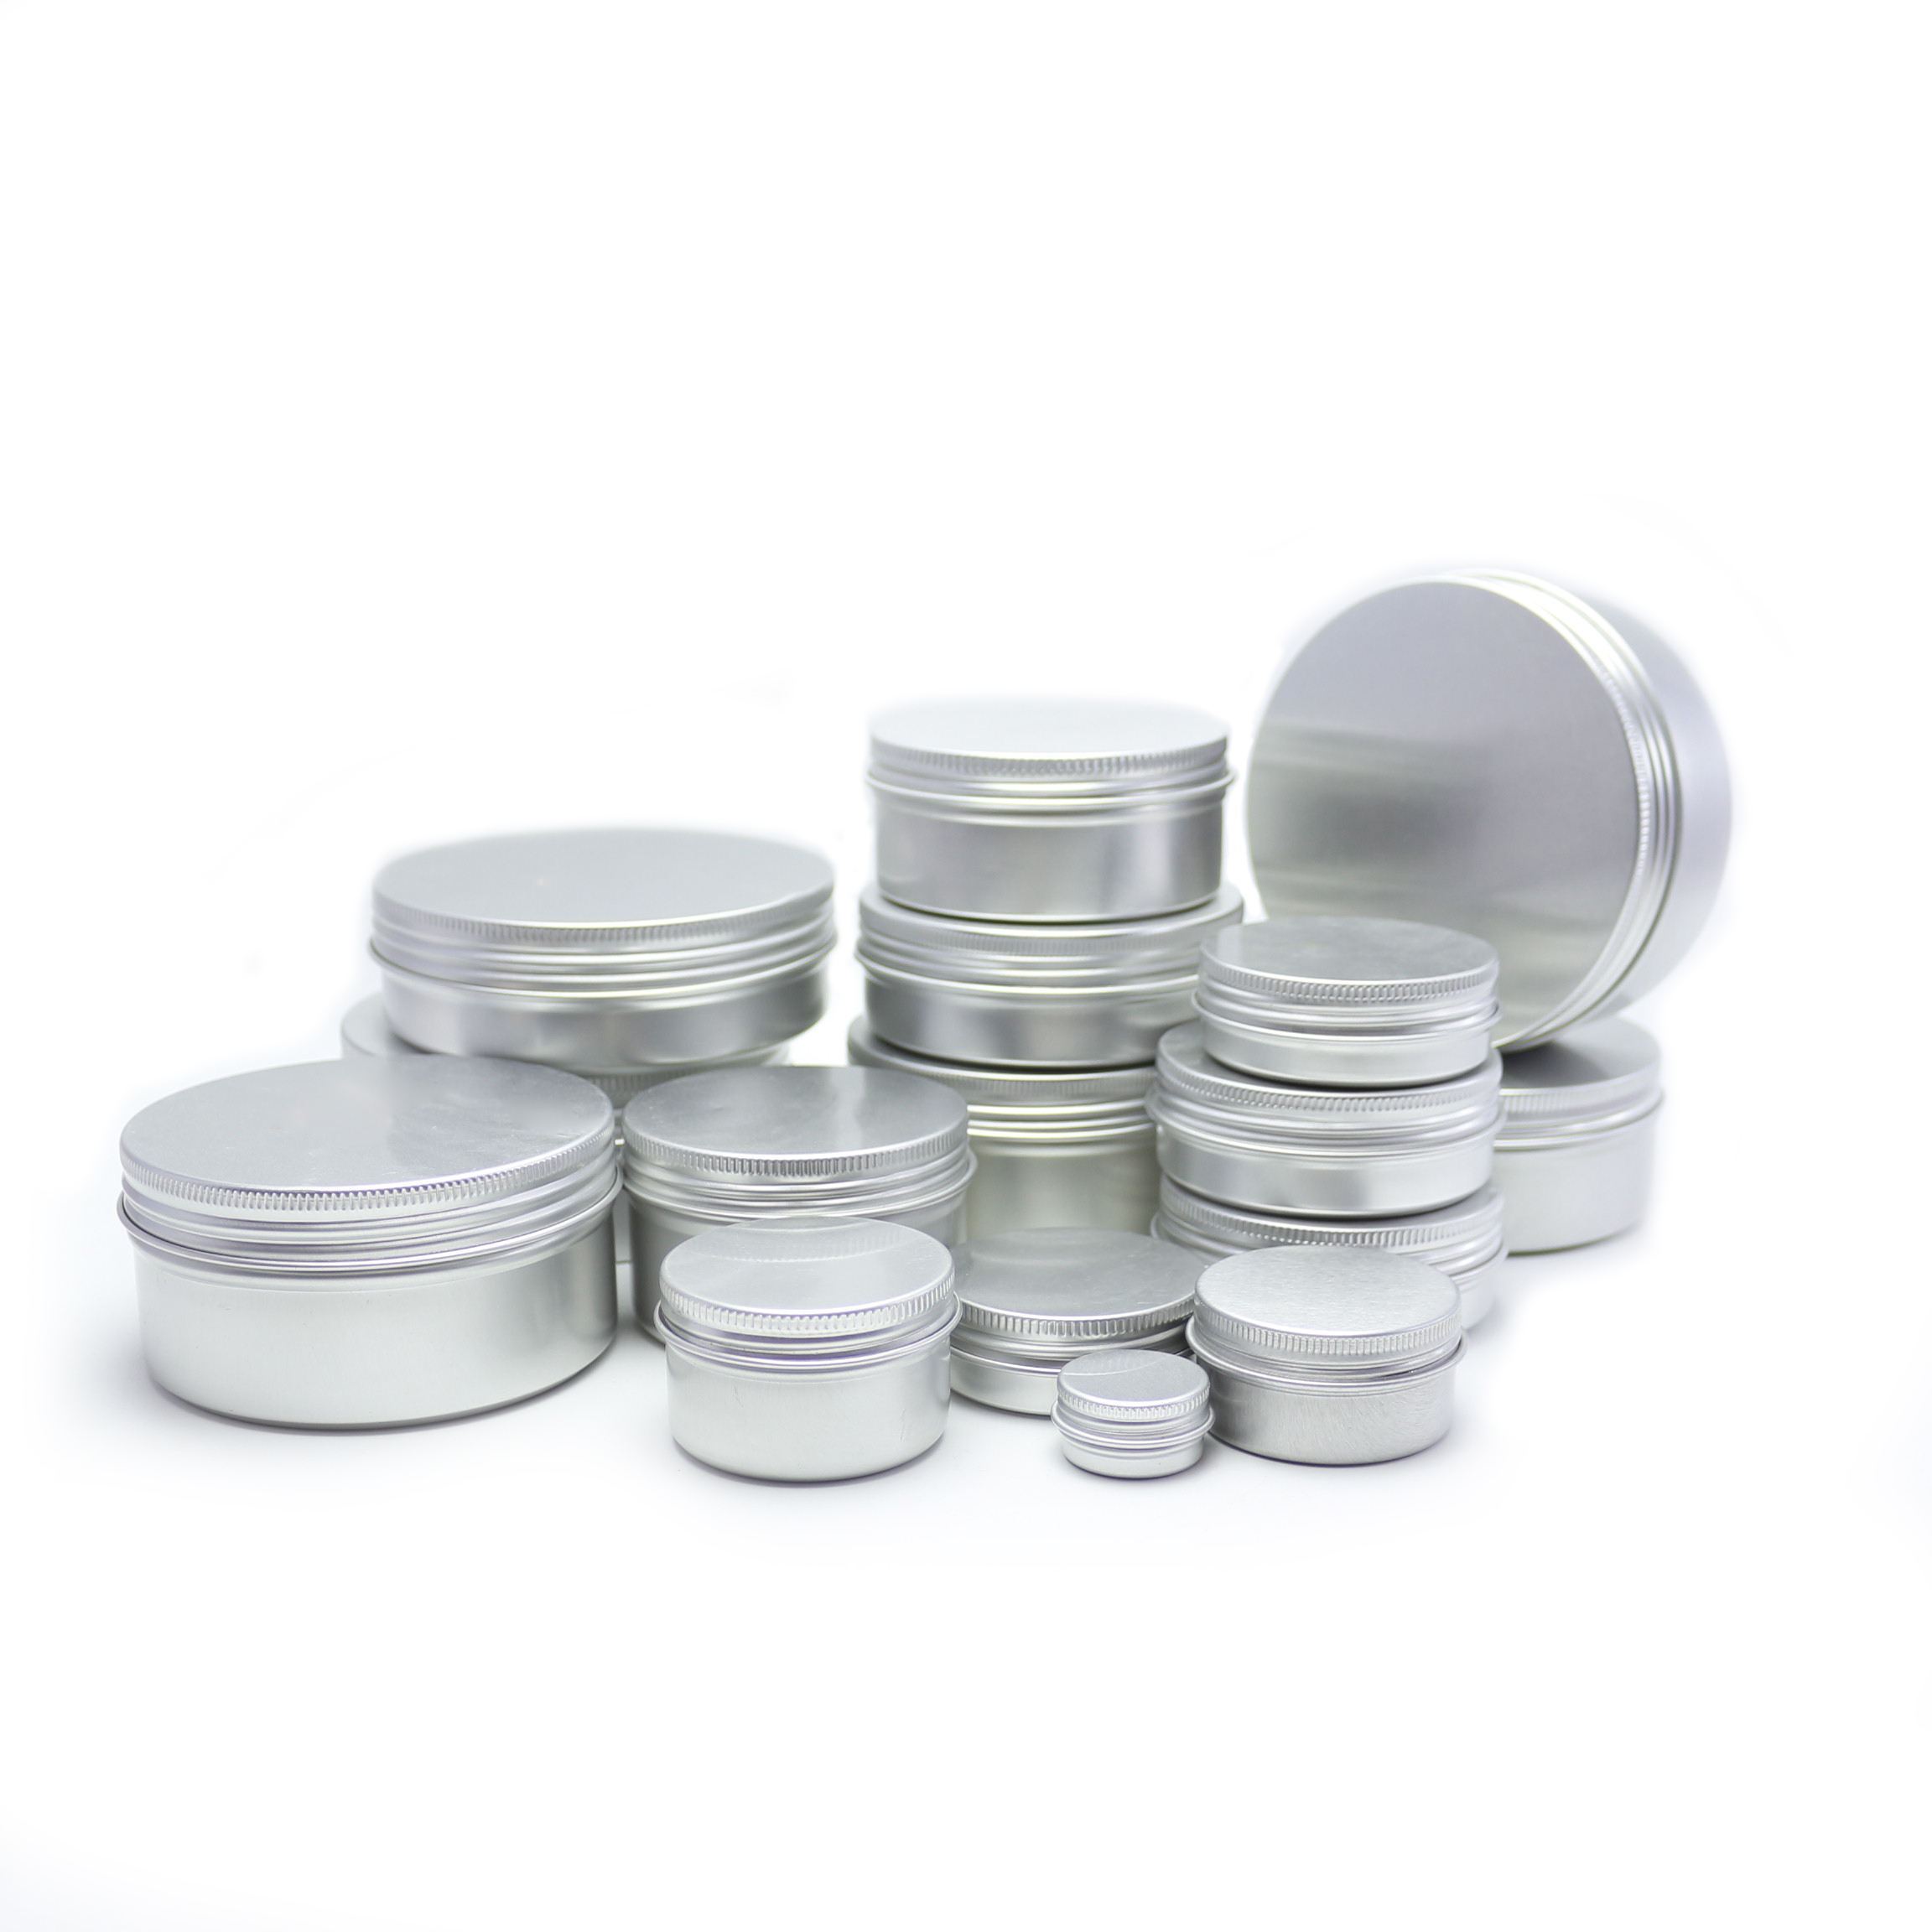 In stock 5g 10g 20g 25g 30g 40g 50g 60g 80g 100g 200g 250g 350g 500g 750g 1000g aluminium jar for cosmetic 888